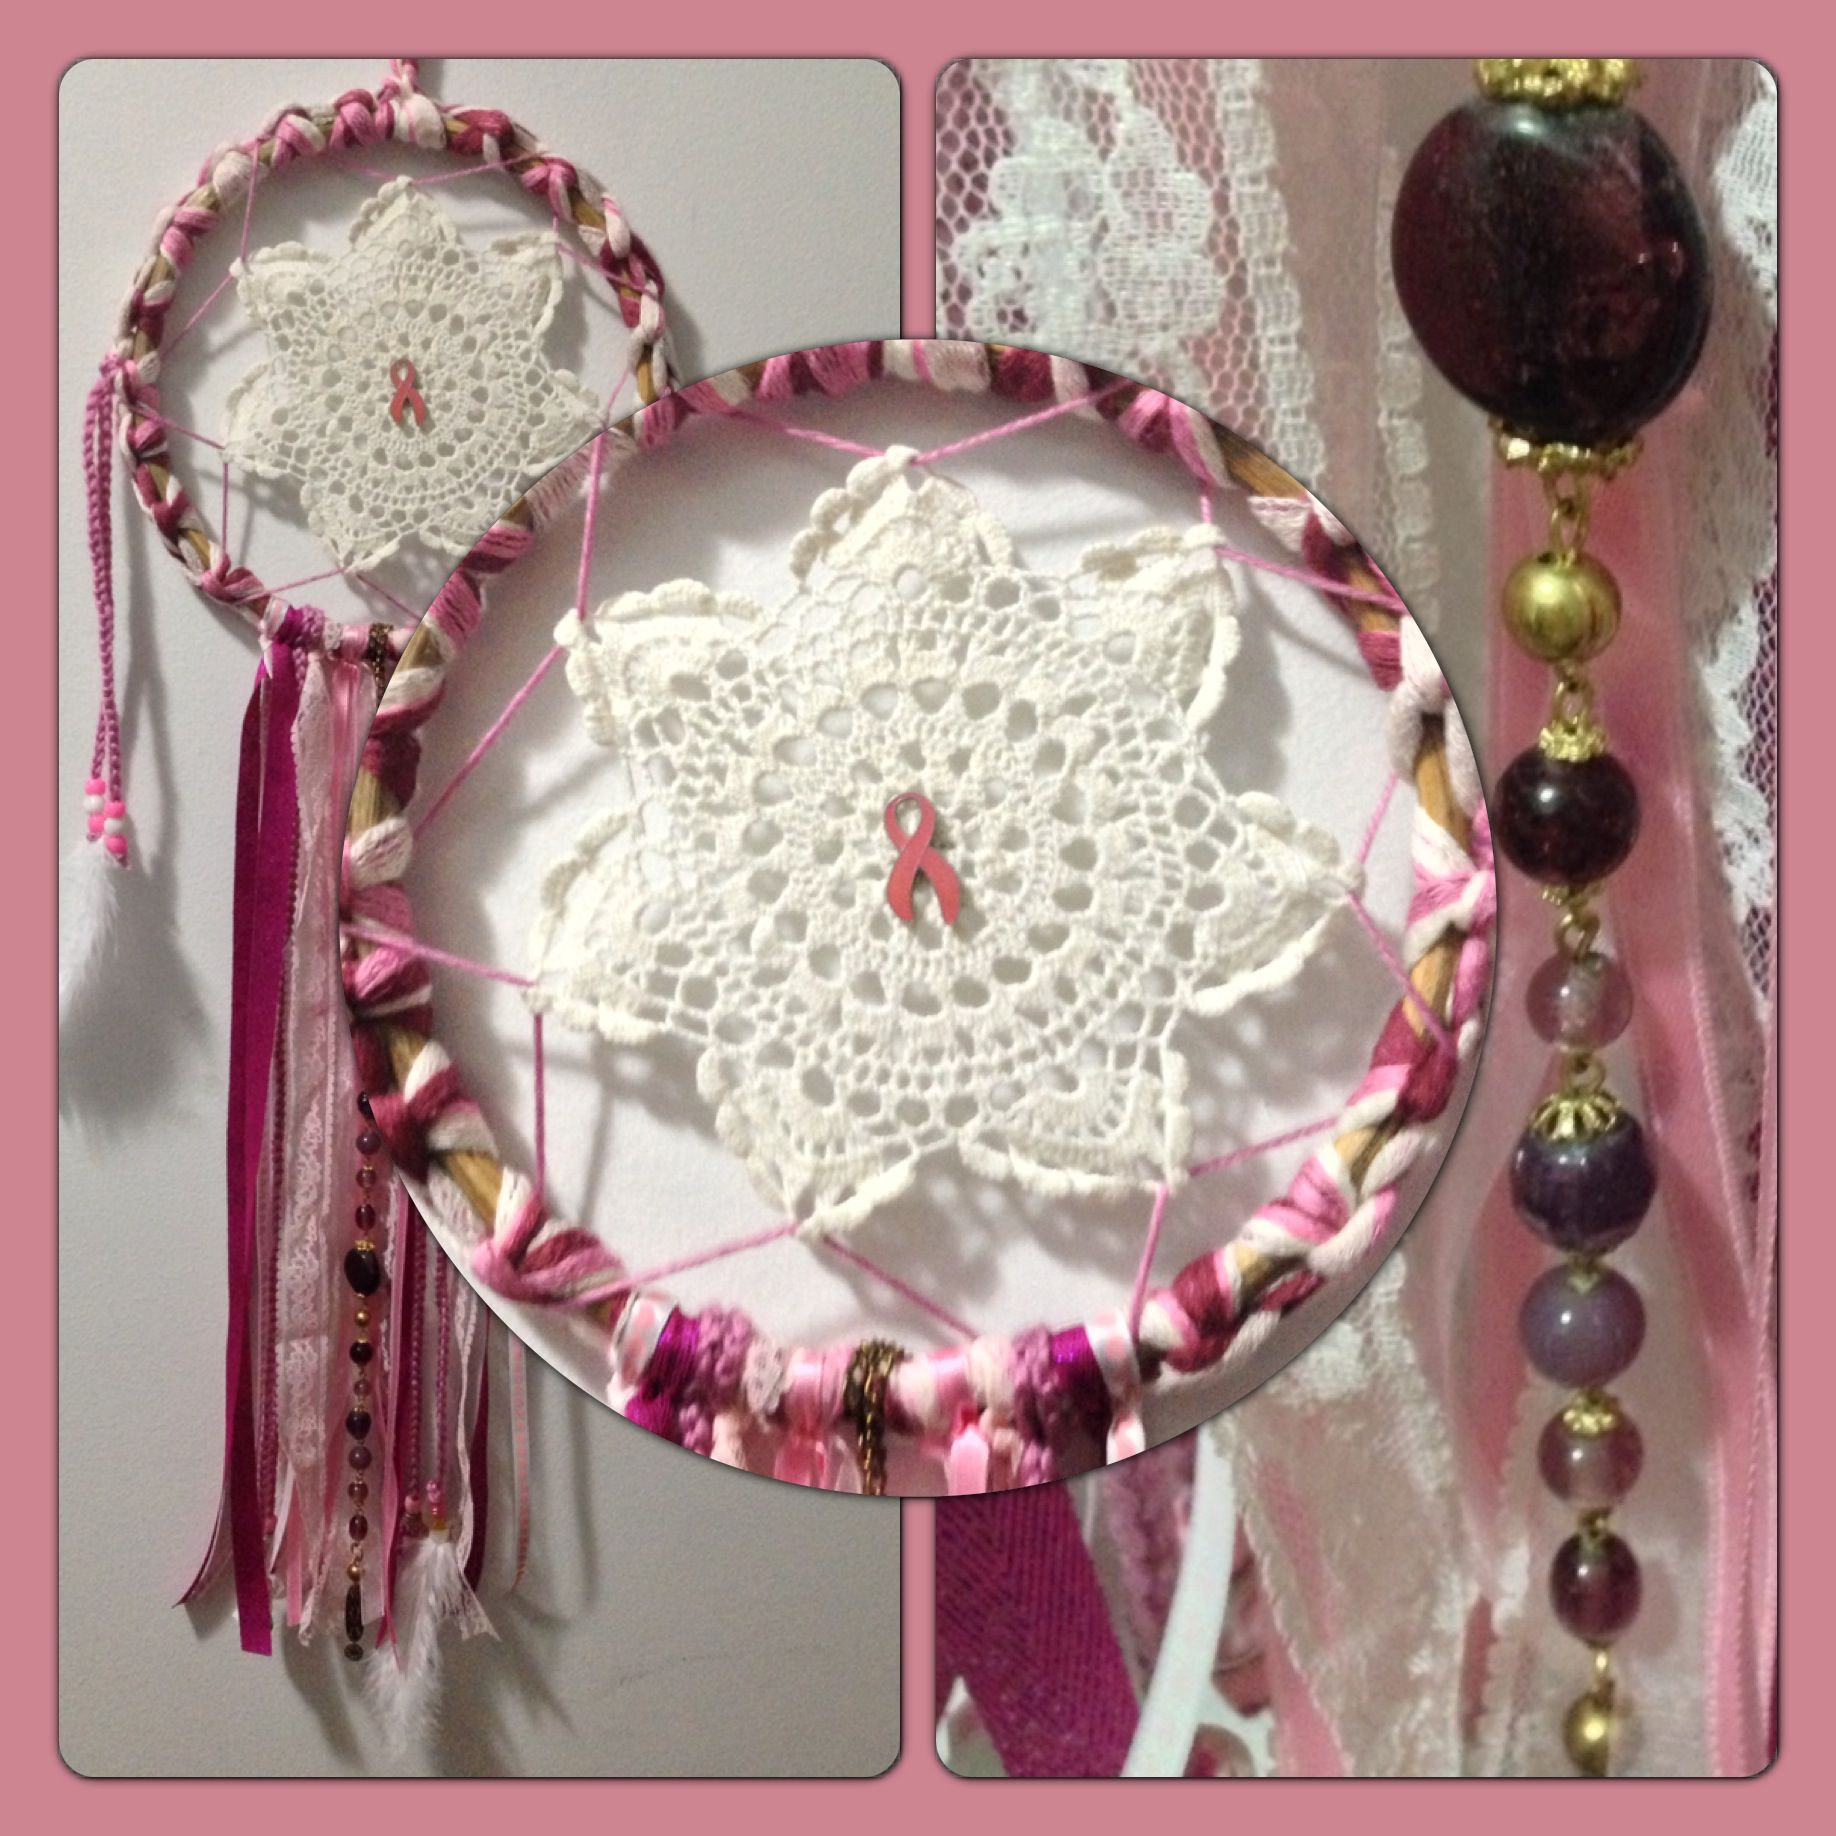 Dreamcatcher For Breast Cancer Research